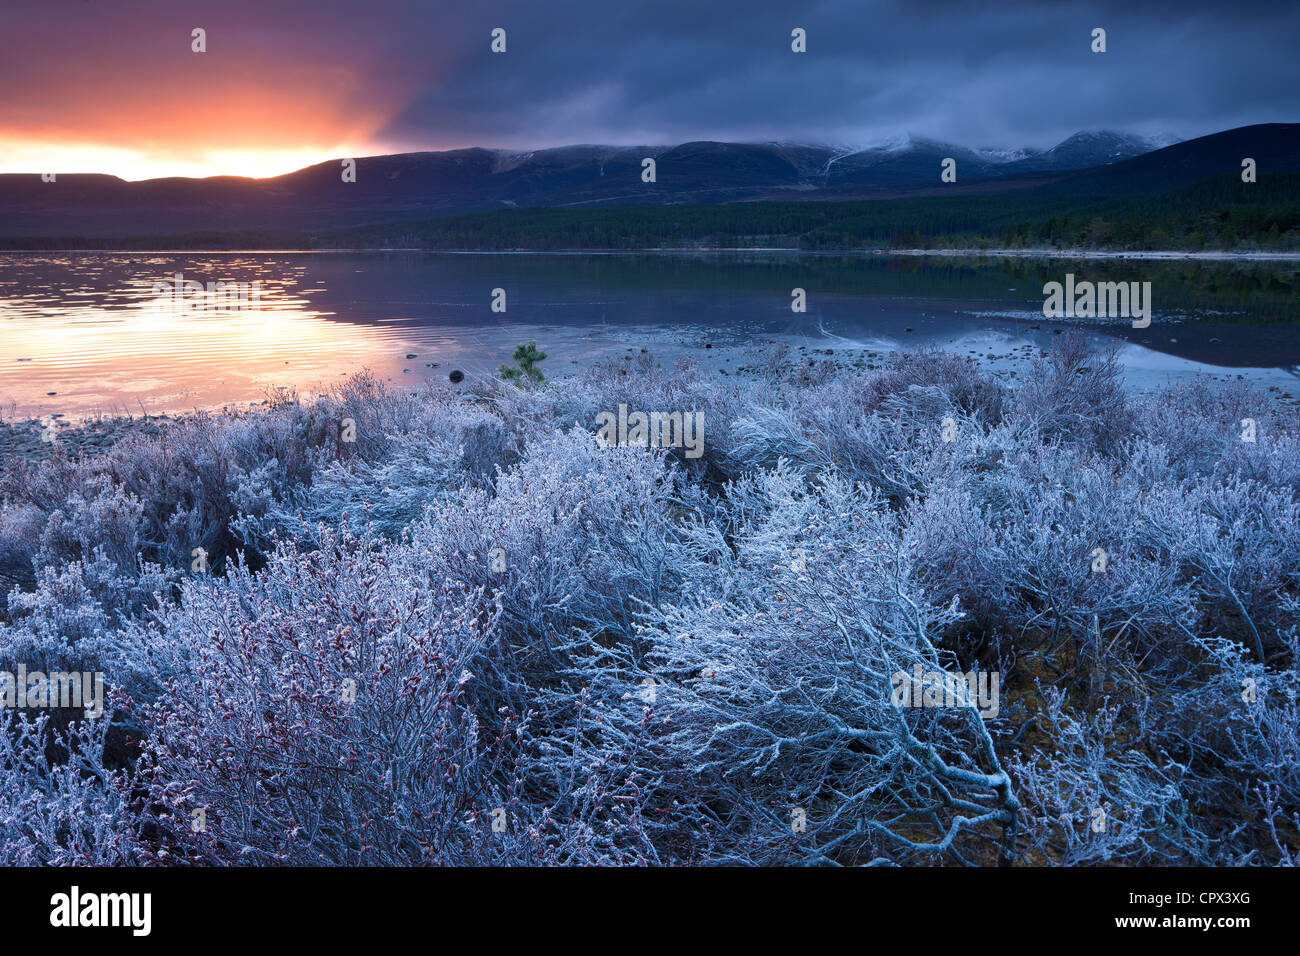 Loch Morlich and the Cairngorms at dawn, Badenoch and Strathspey, Scotland - Stock Image